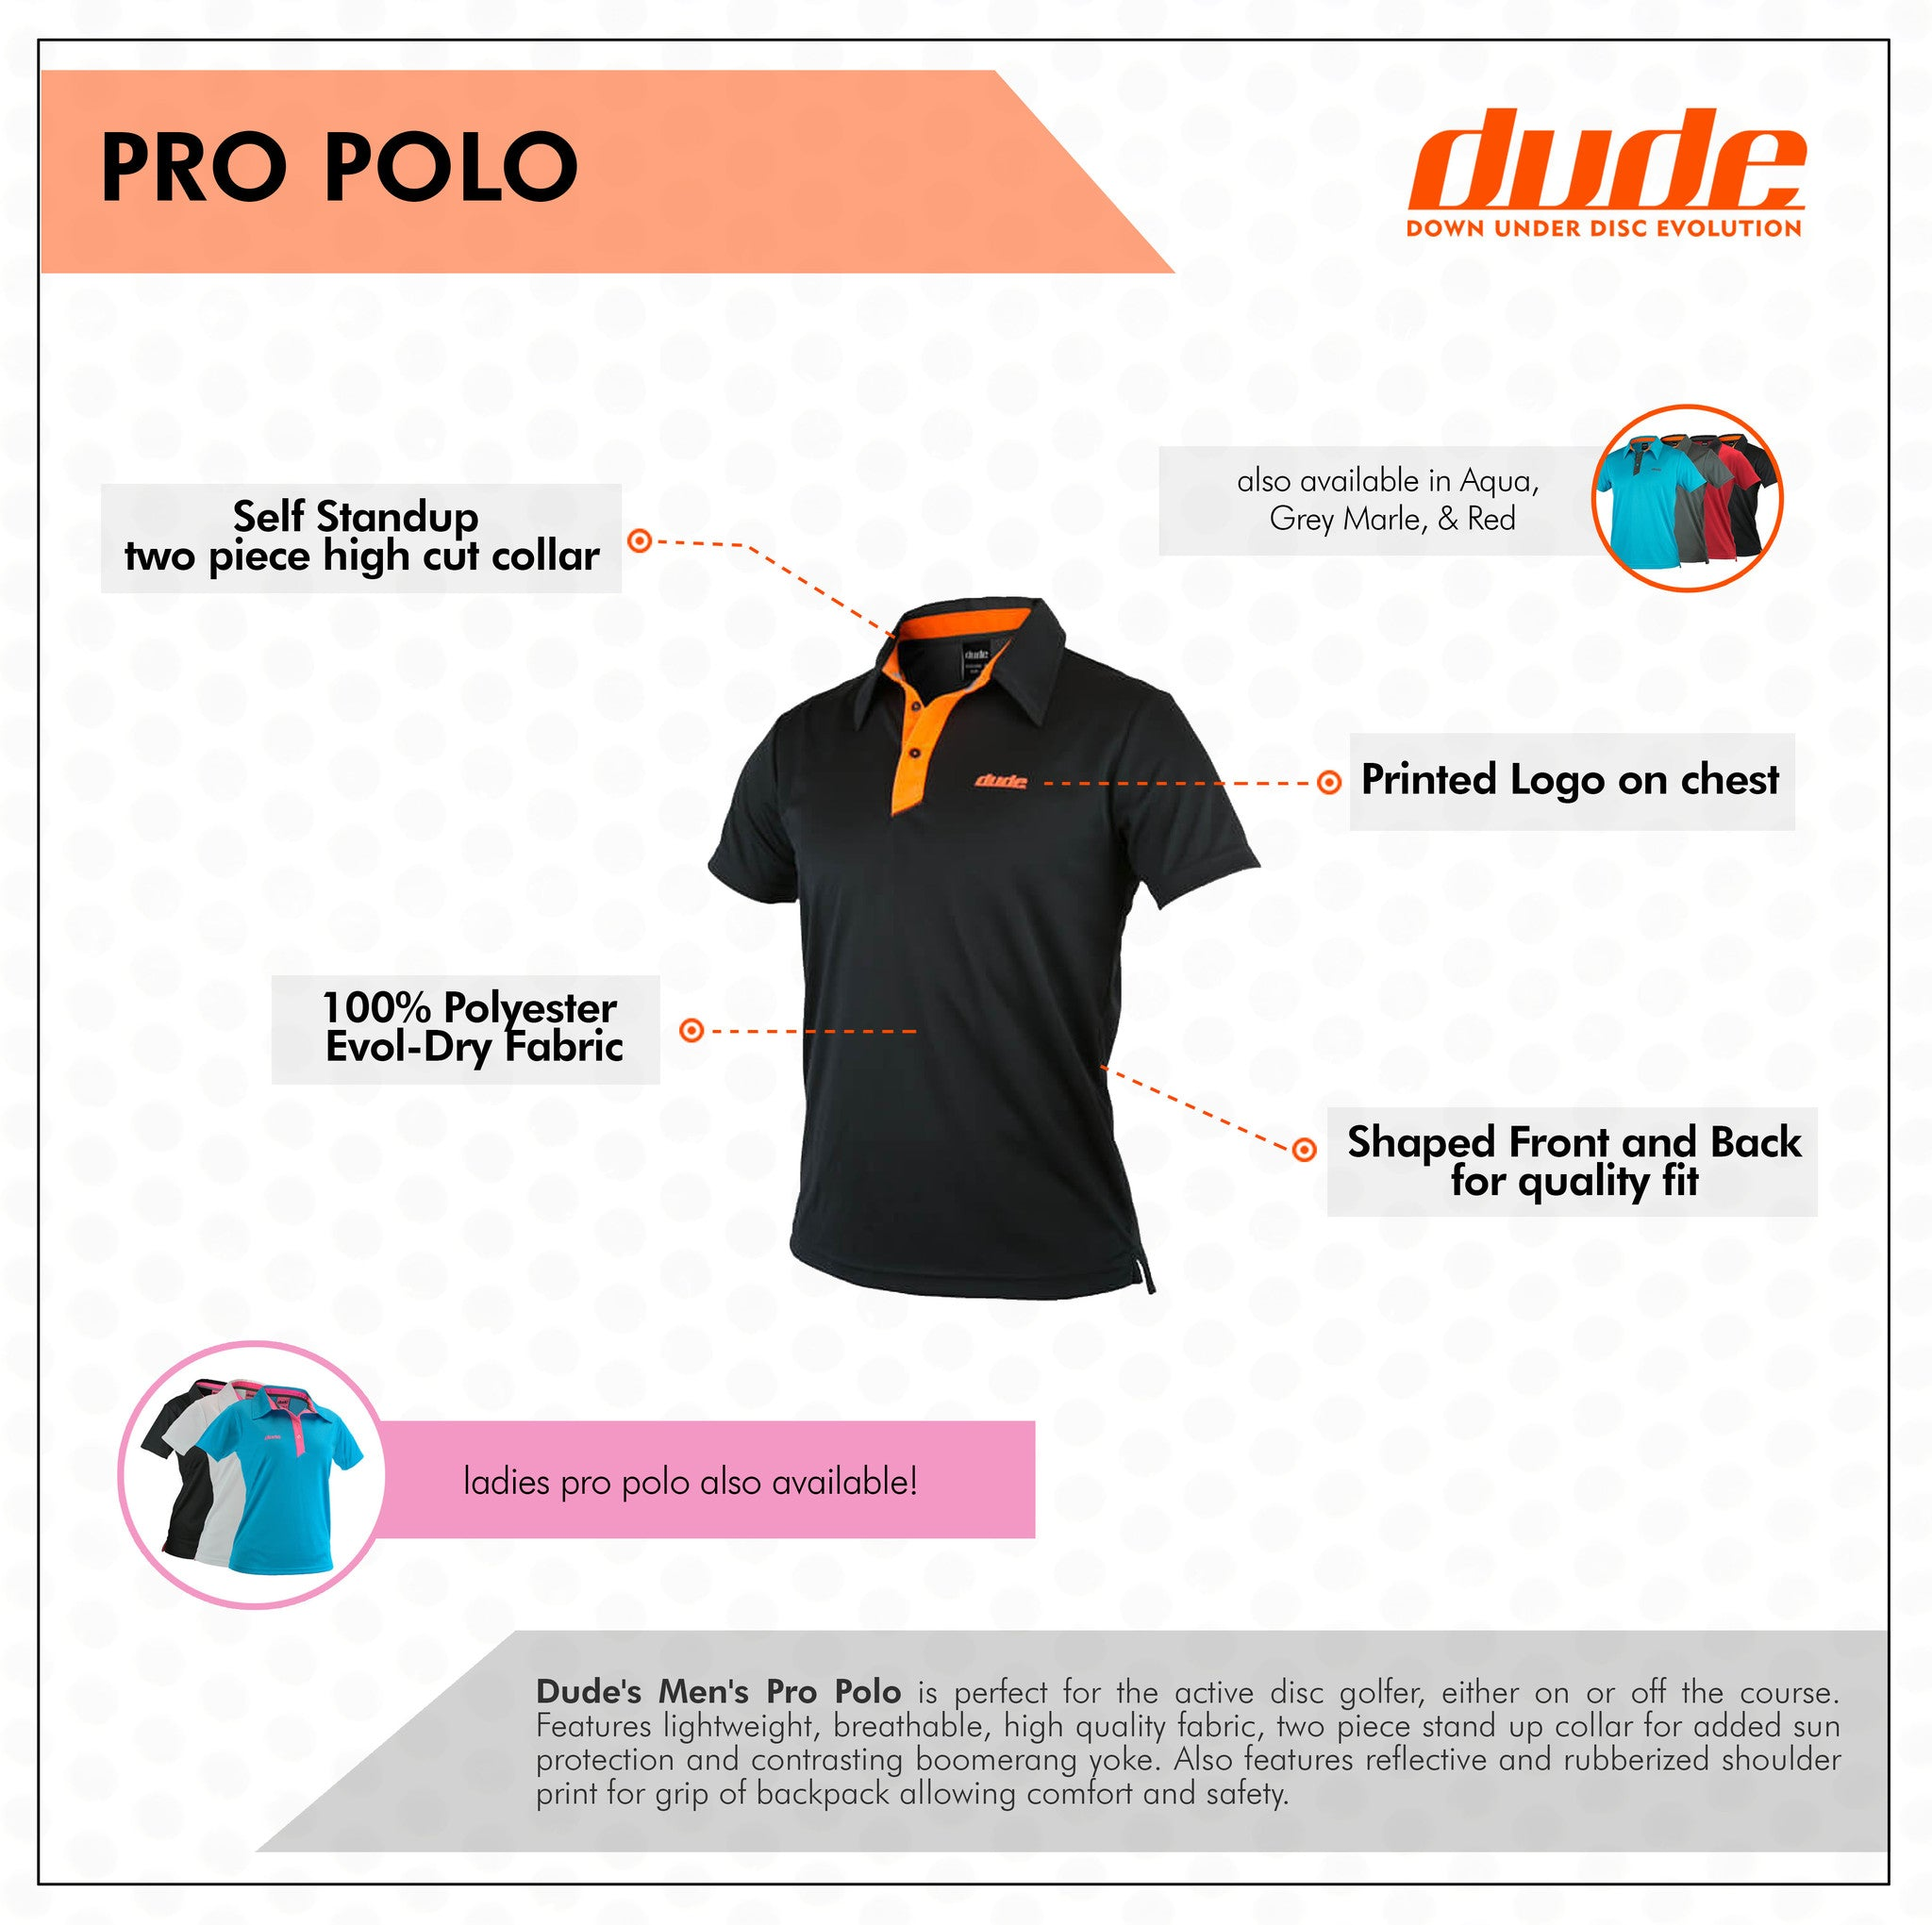 An image of Dude Pro Polo in black color with features